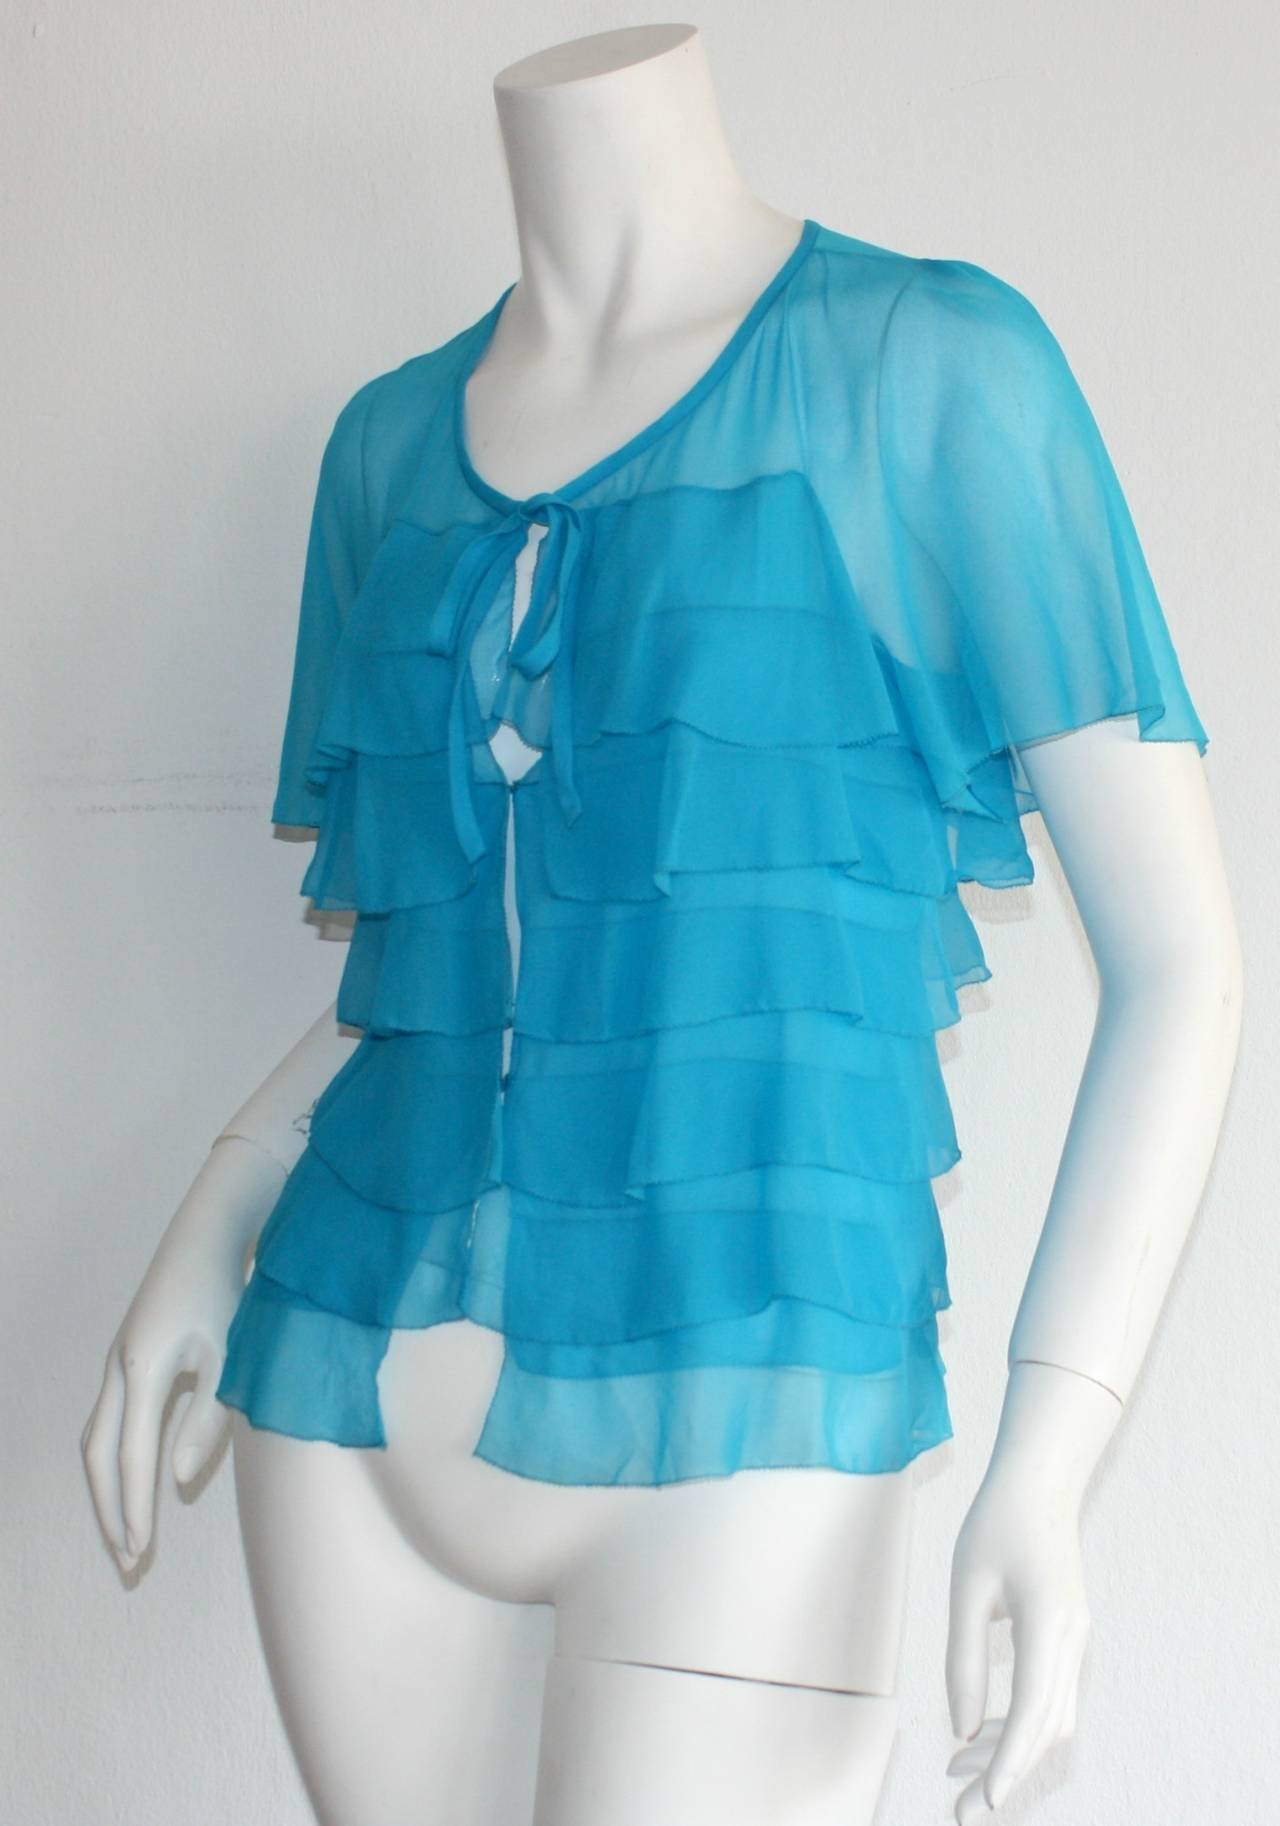 Vintage Holly's Harp Blue Silk Chiffon Tiered Ruffle Bow Blouse 7